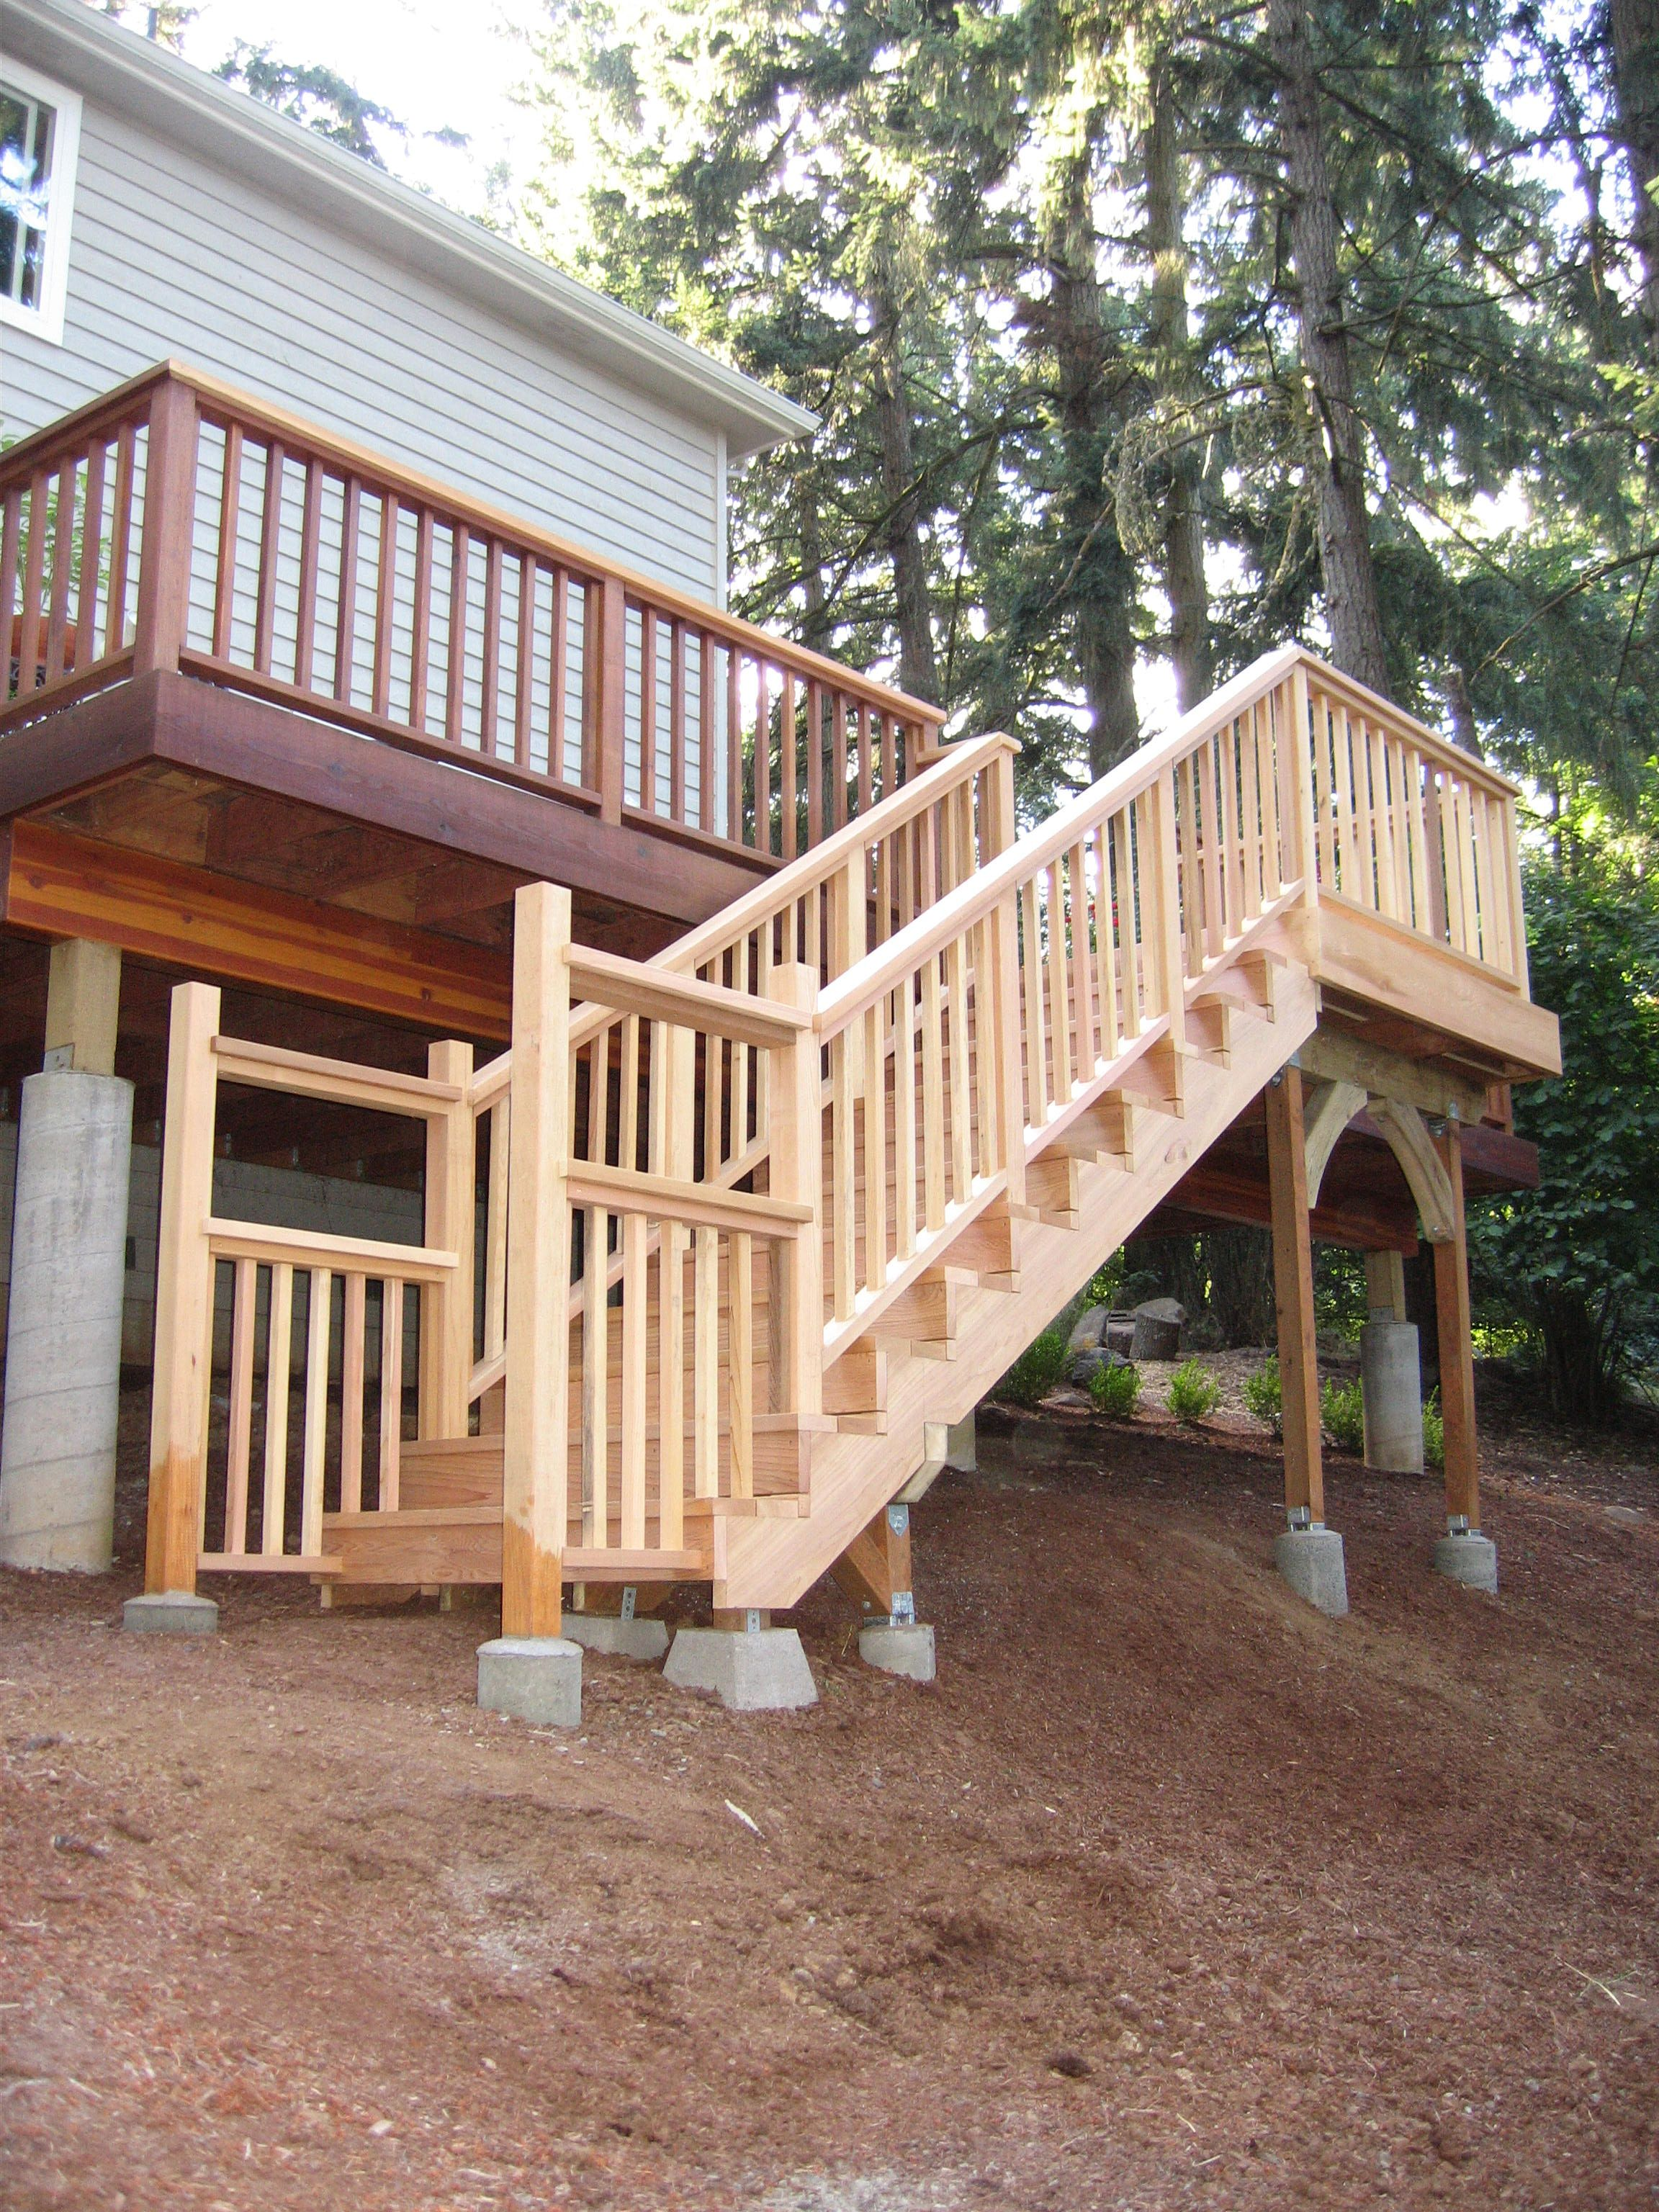 Custom staircase. What a great addition to access a split ... on Split Level Backyard Ideas id=18080